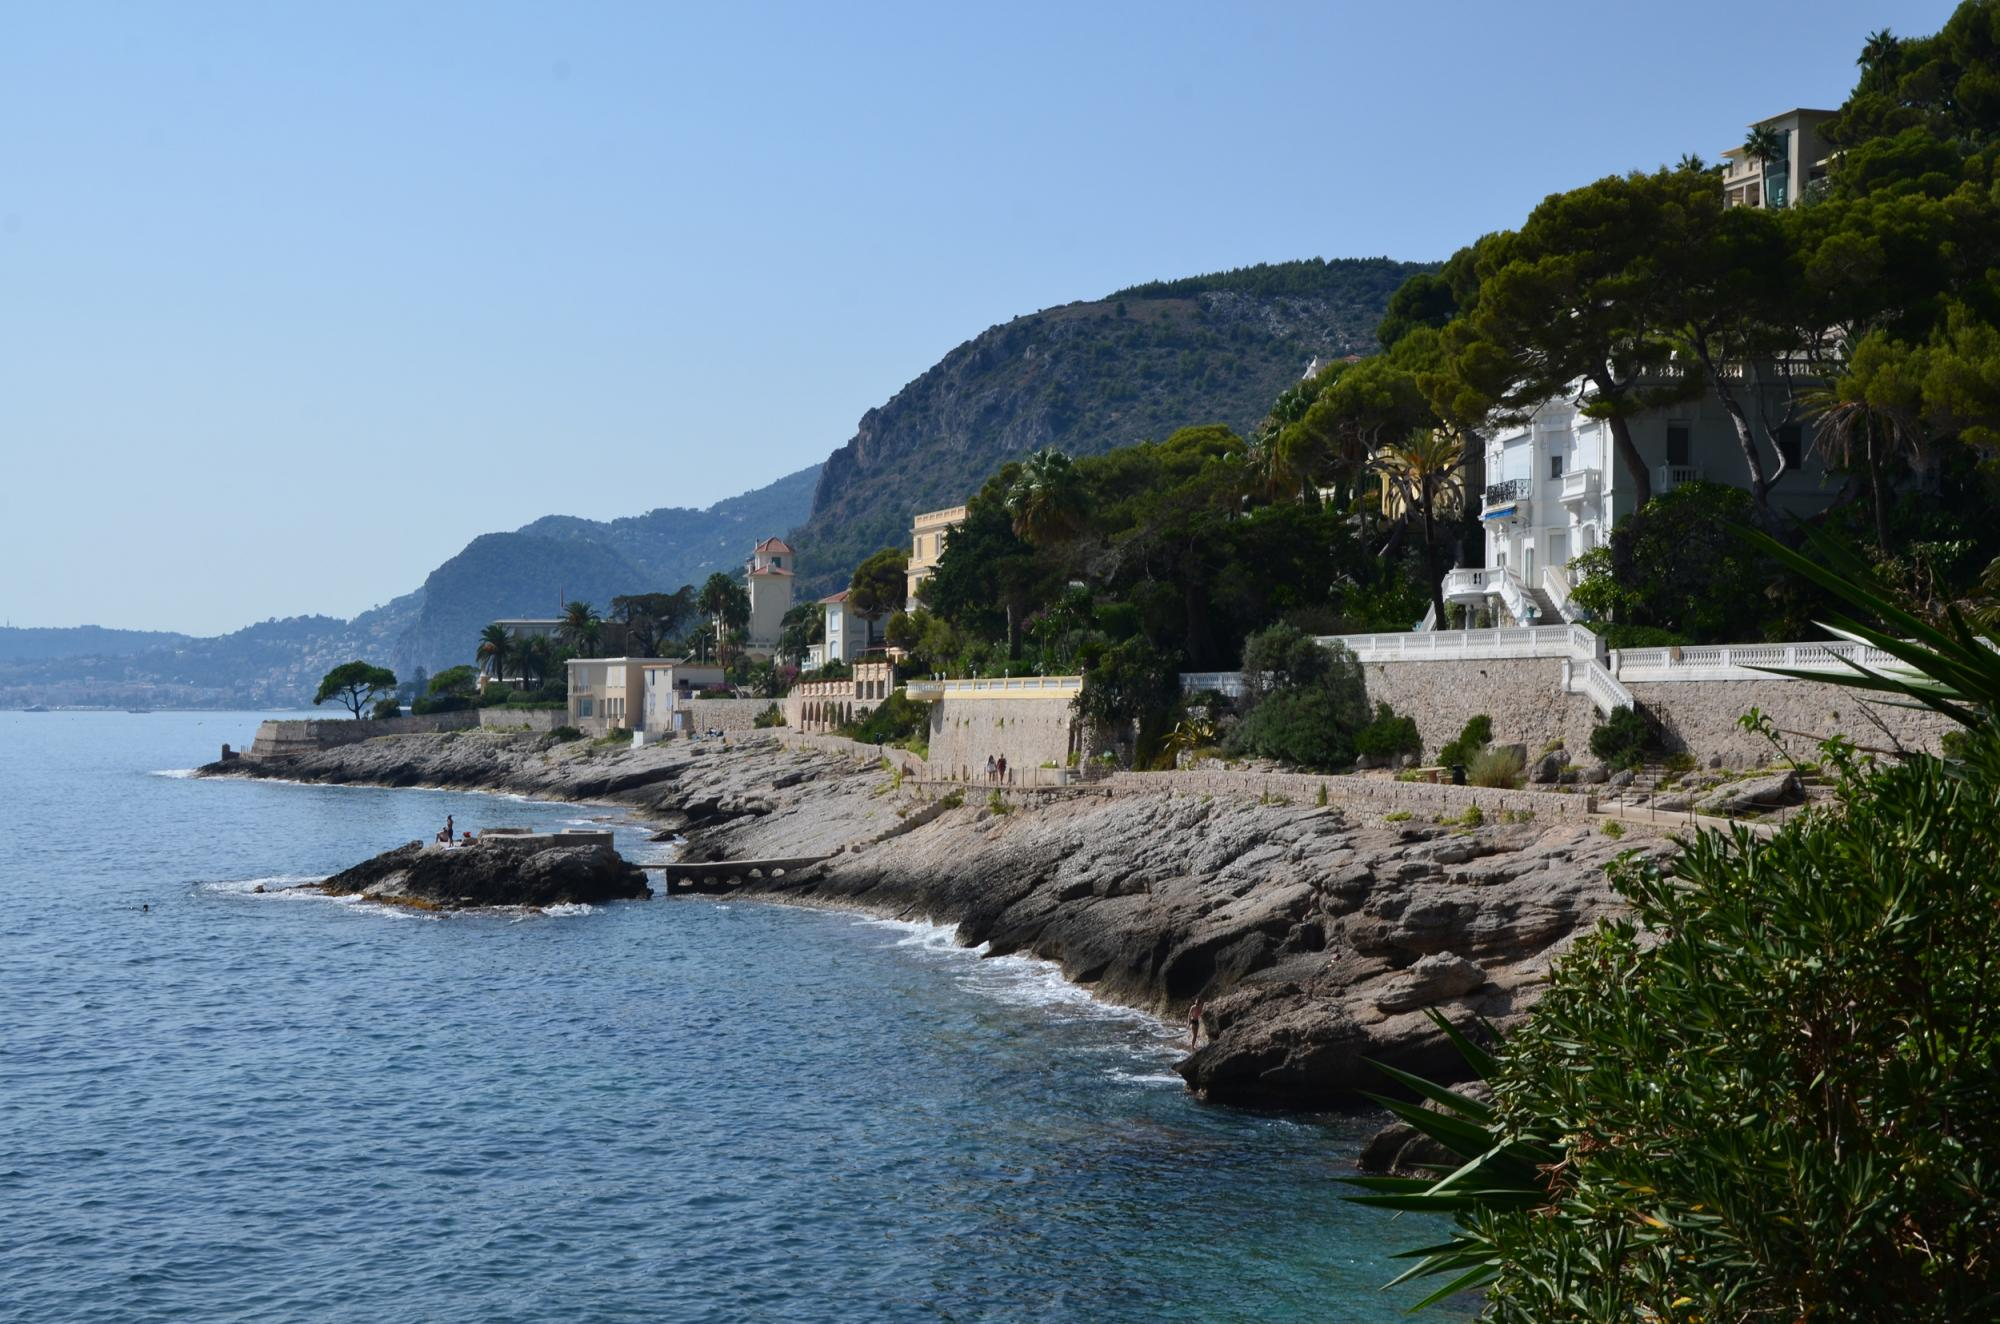 French riviera normandy beaches yachting mediterranean road trip europe